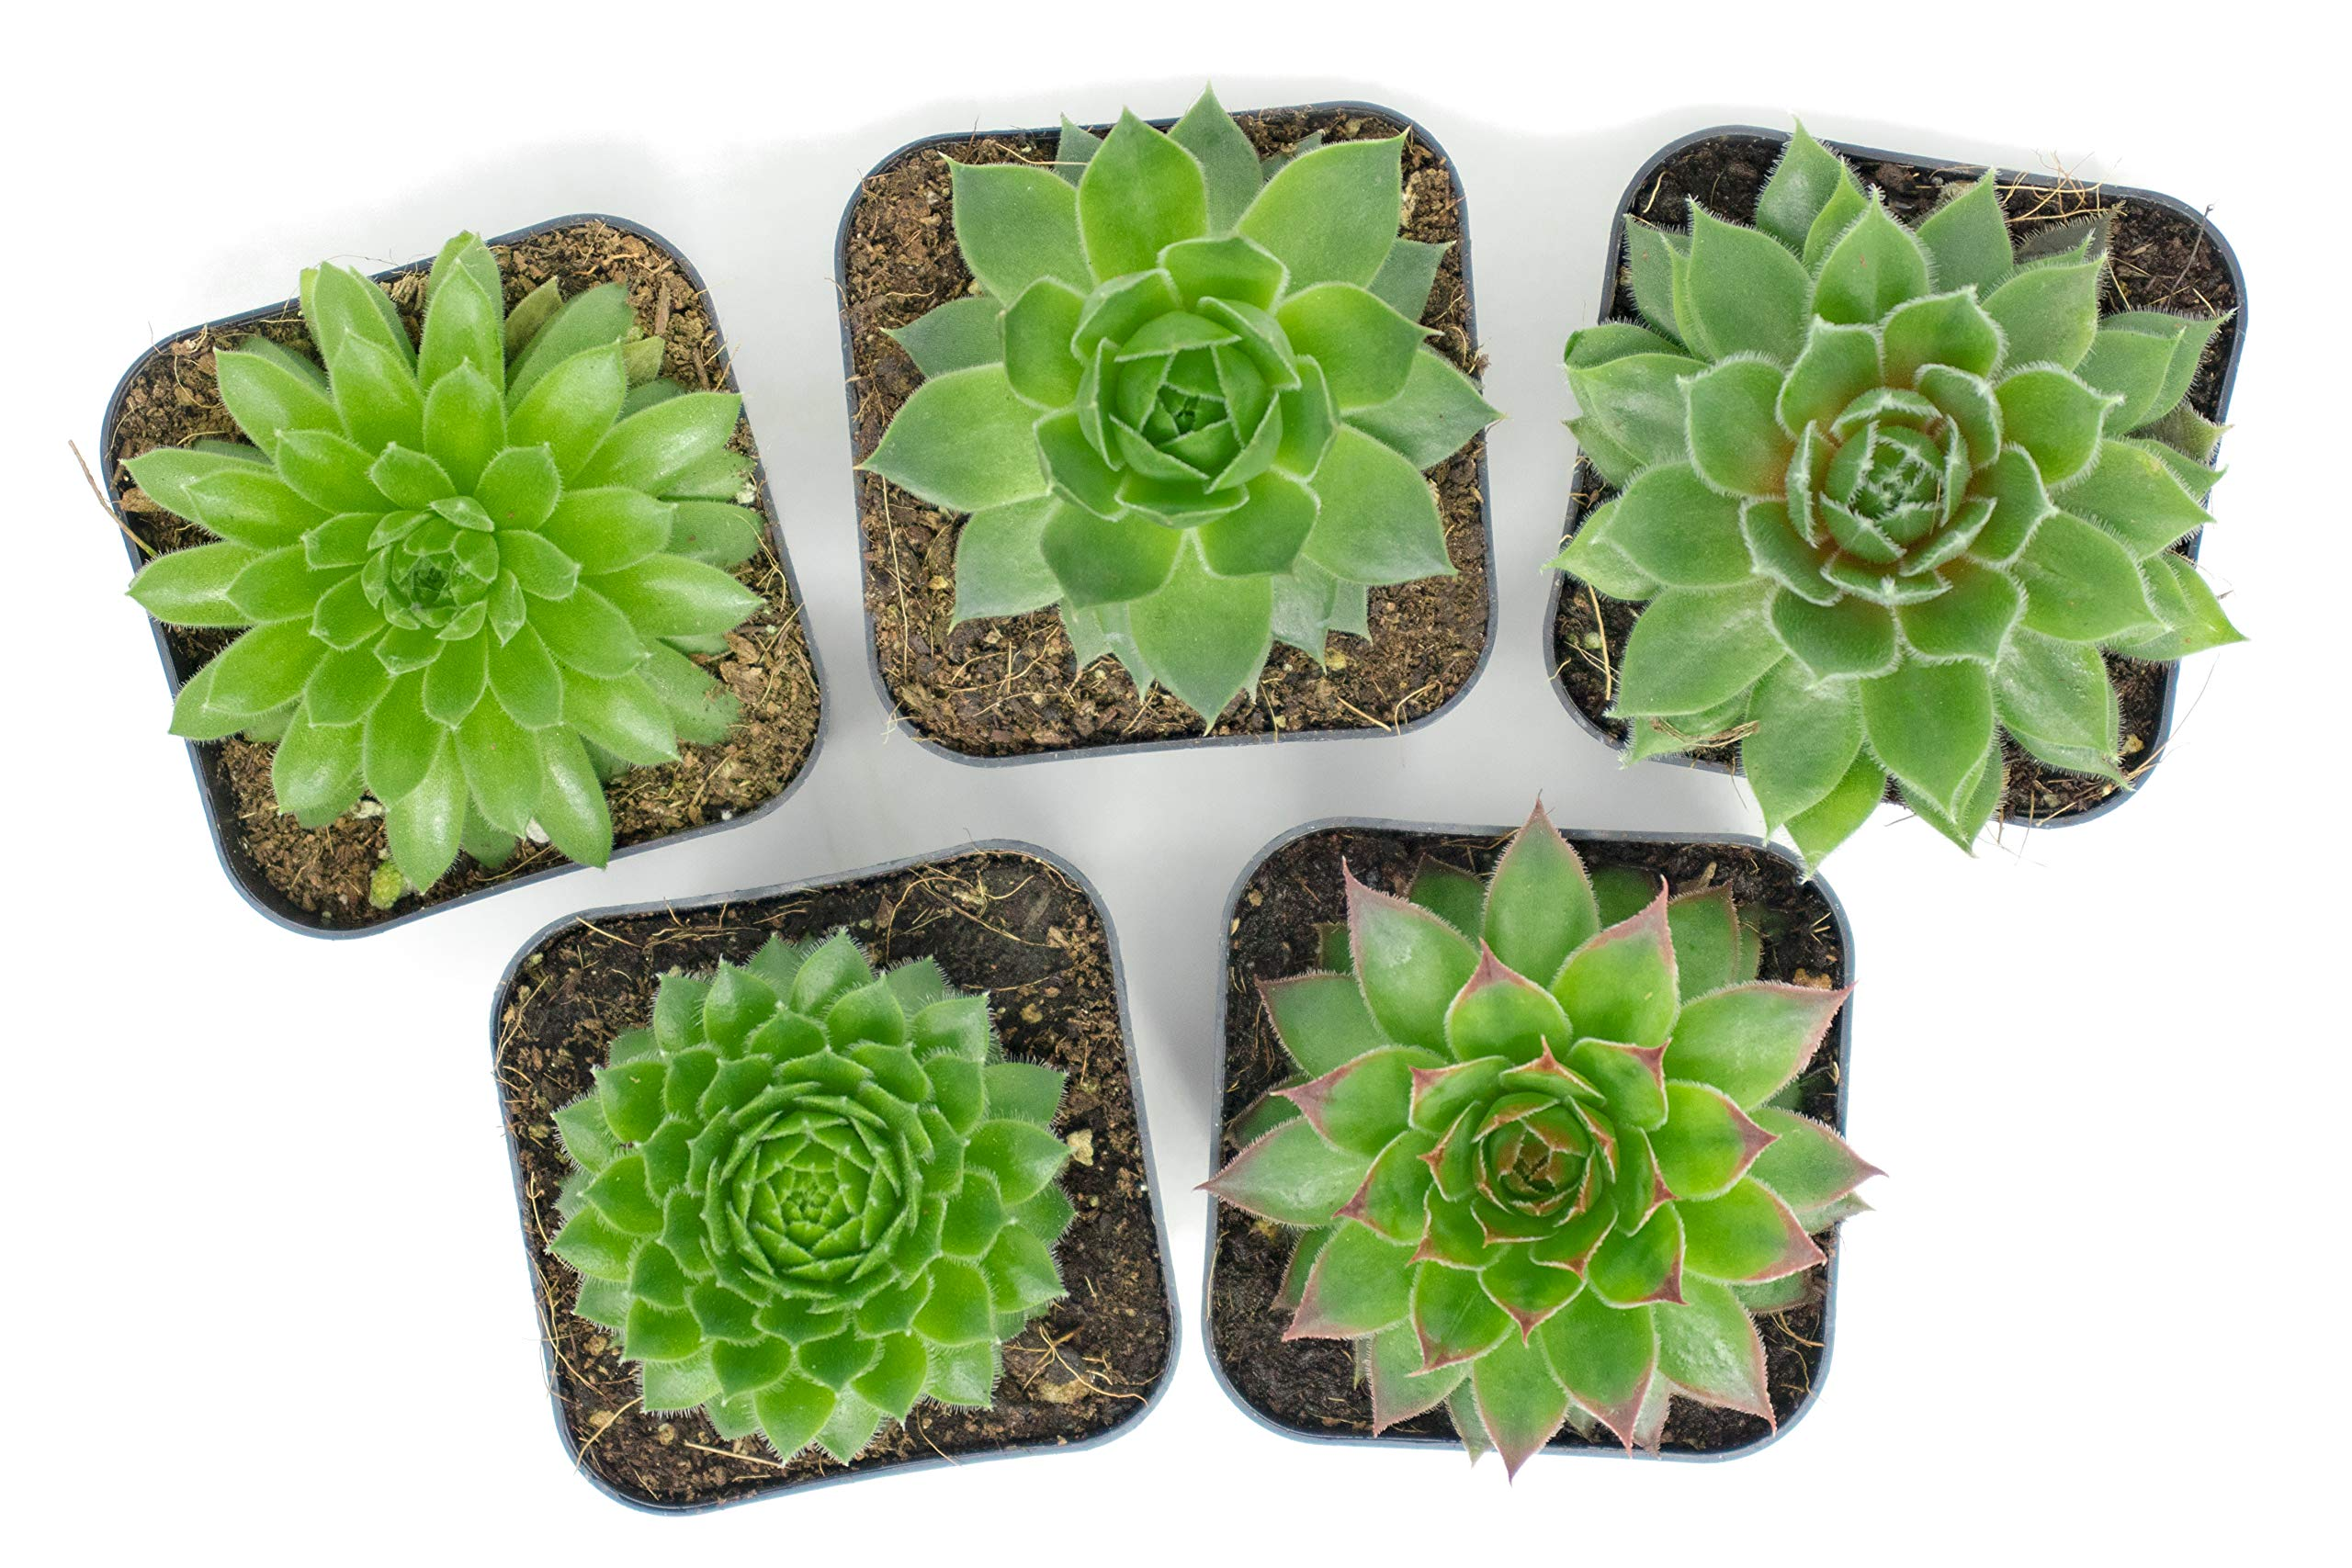 Succulent Plants | 20 Sempervivum Succulents | Rooted in Planter Pots with Soil | Real Live Indoor Plants | Gifts or Room Decor by Plants for Pets by Plants for Pets (Image #5)